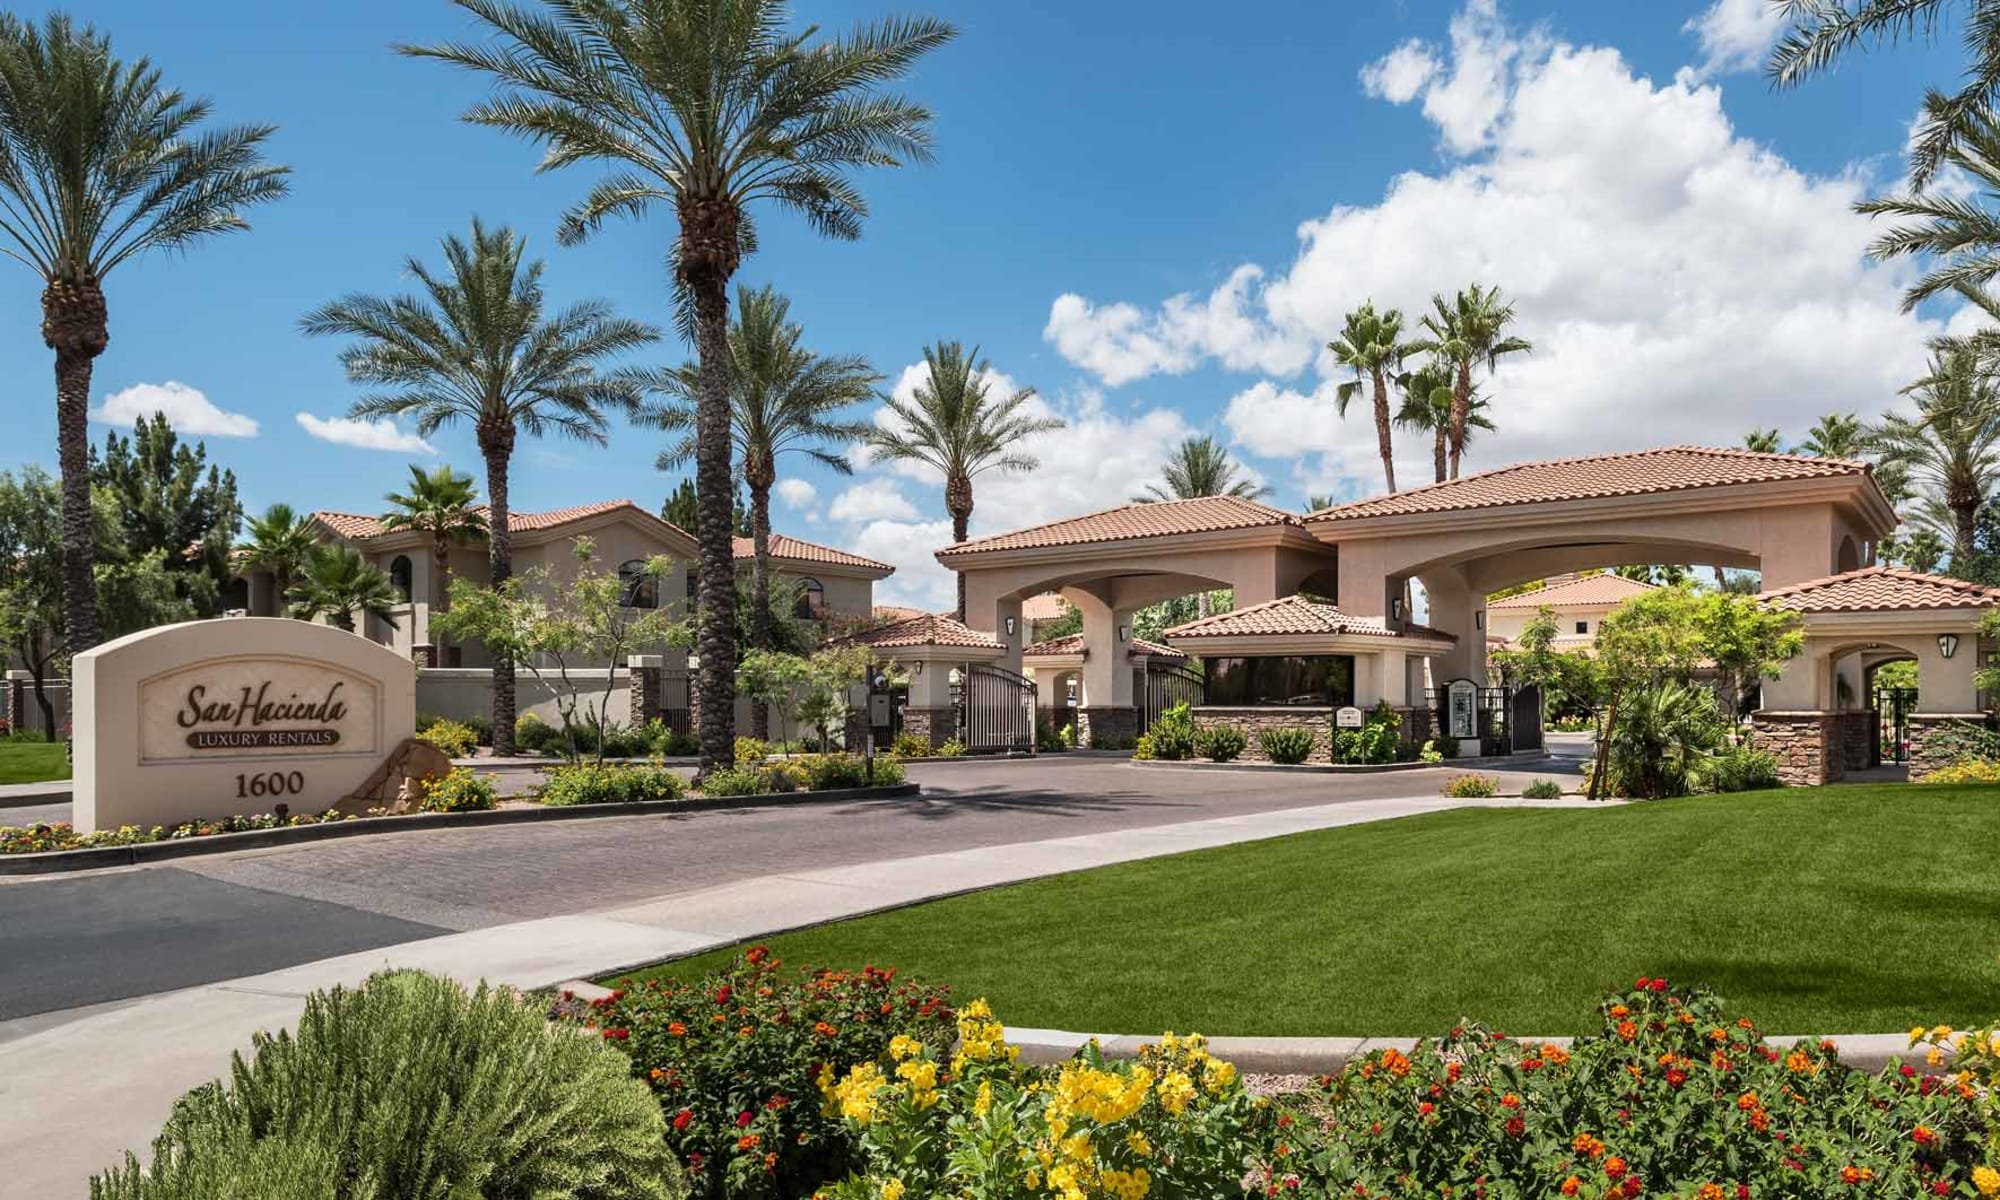 Gated Community at San Hacienda in Chandler, Arizona